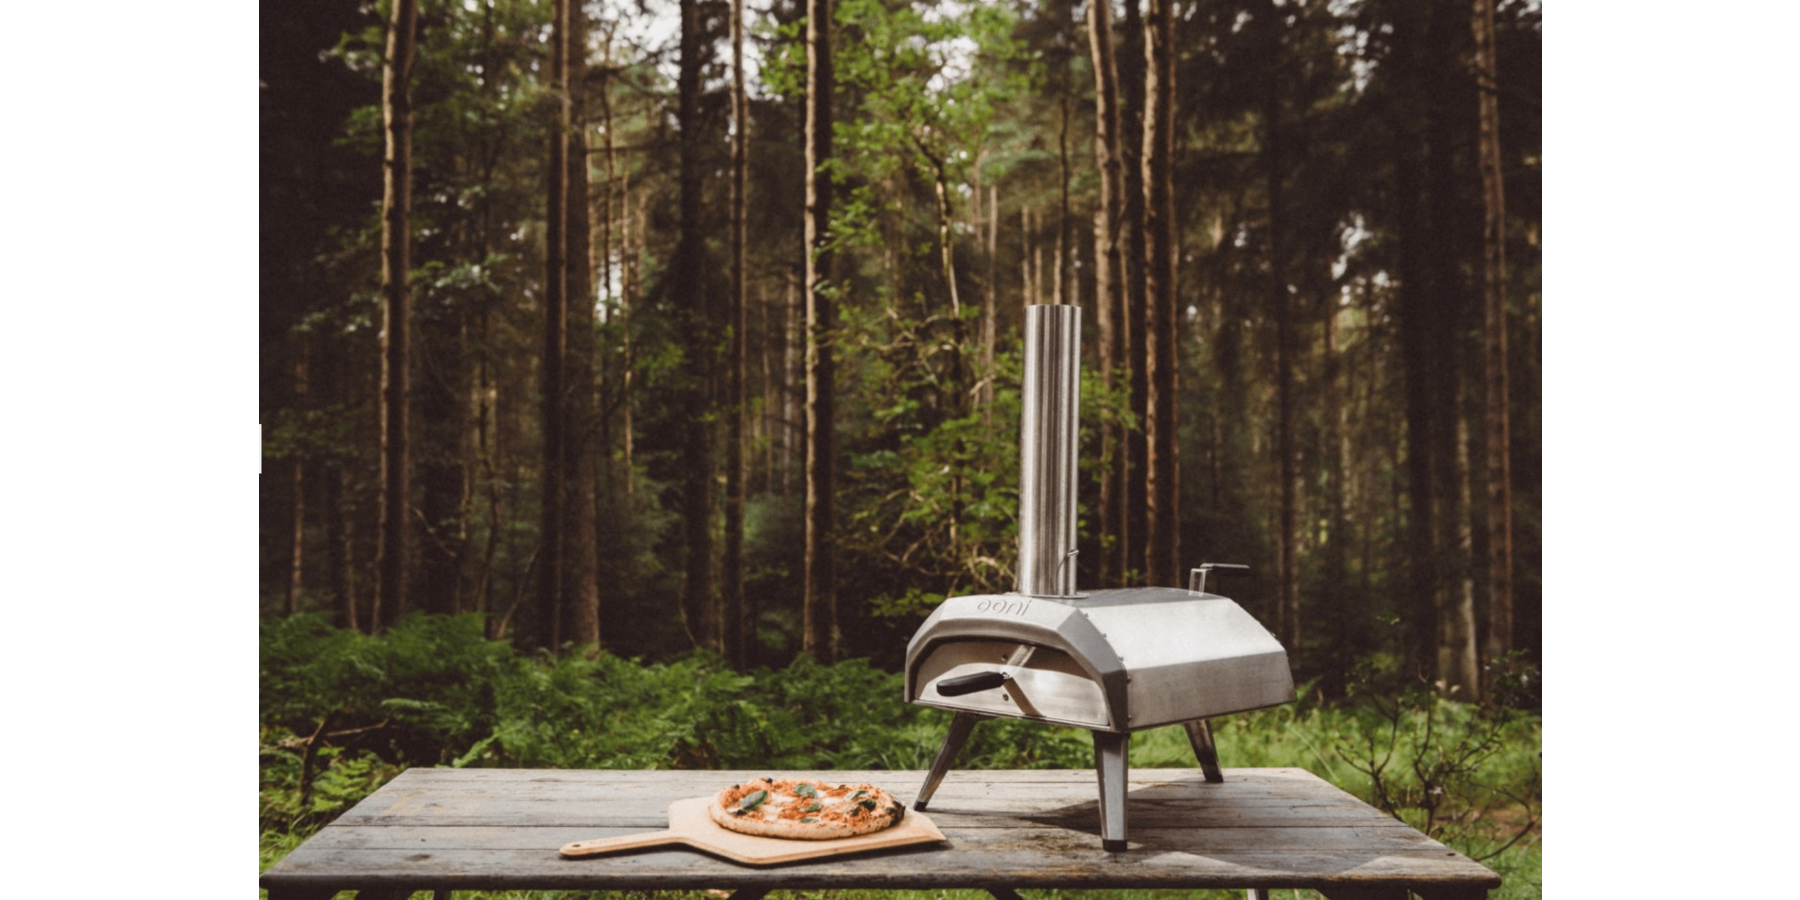 Karu Wood and Charcoal-Fired Portable Pizza Oven